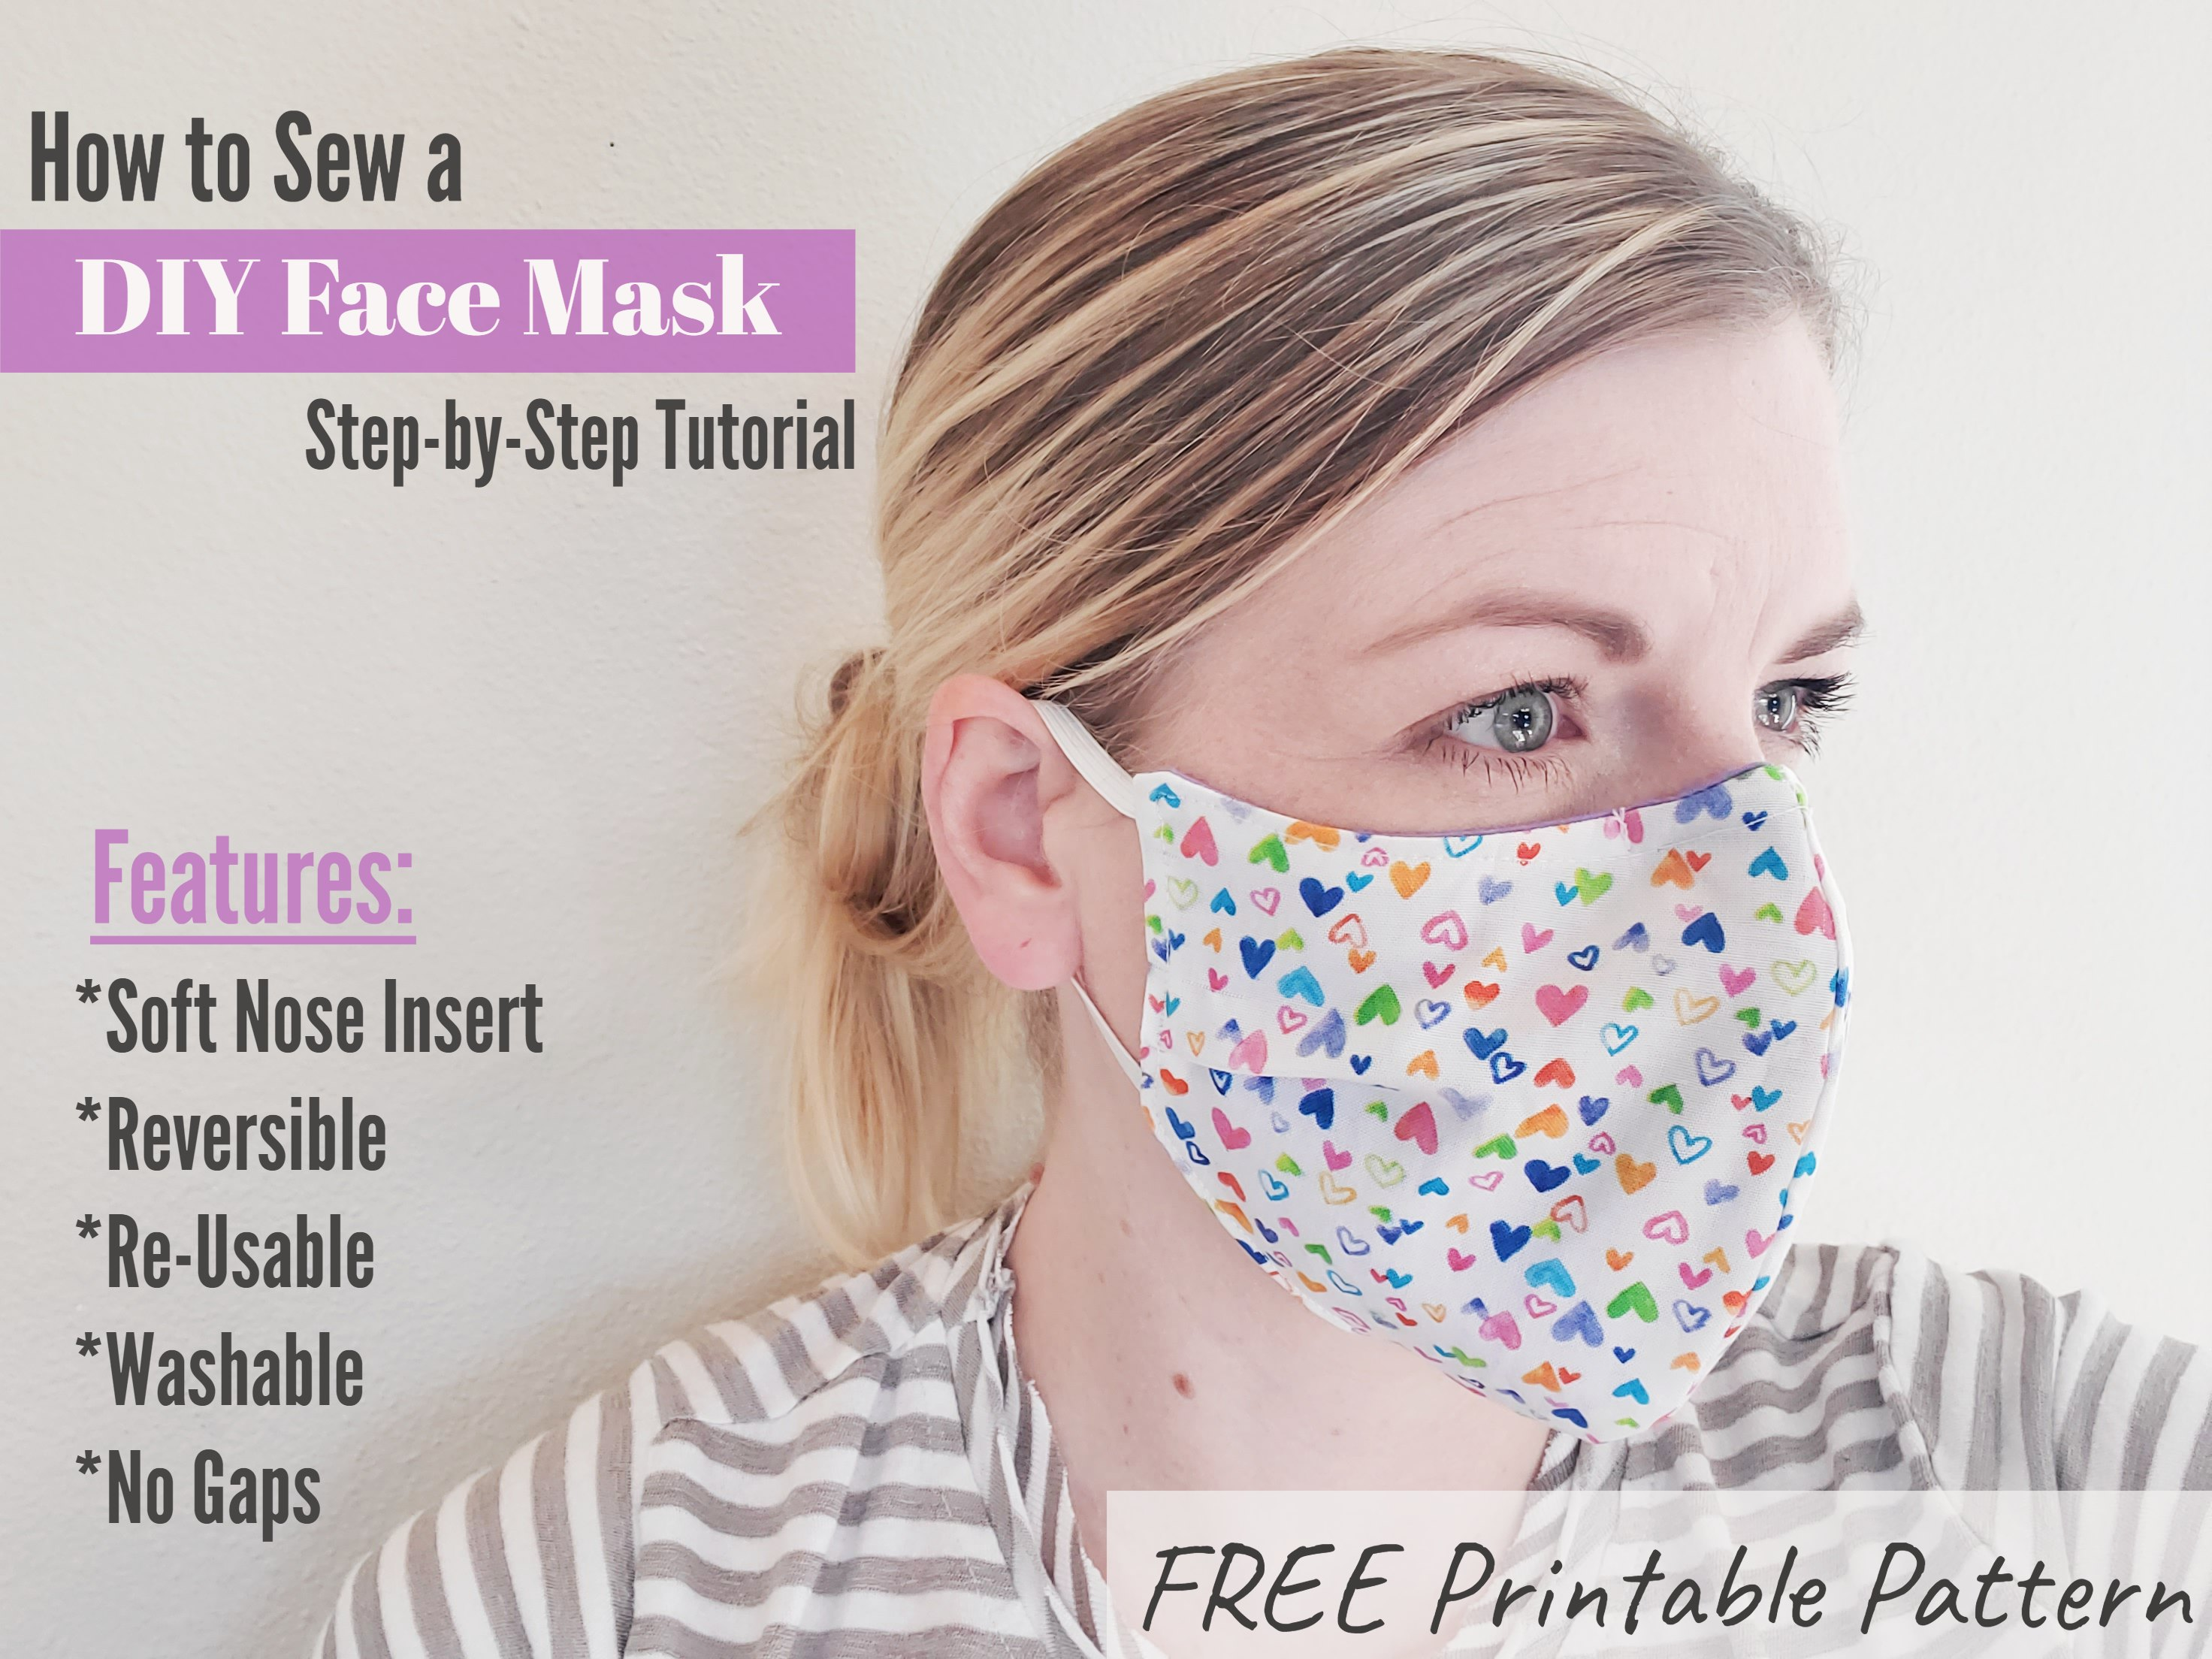 Diy Face Mask Tutorial And Pattern